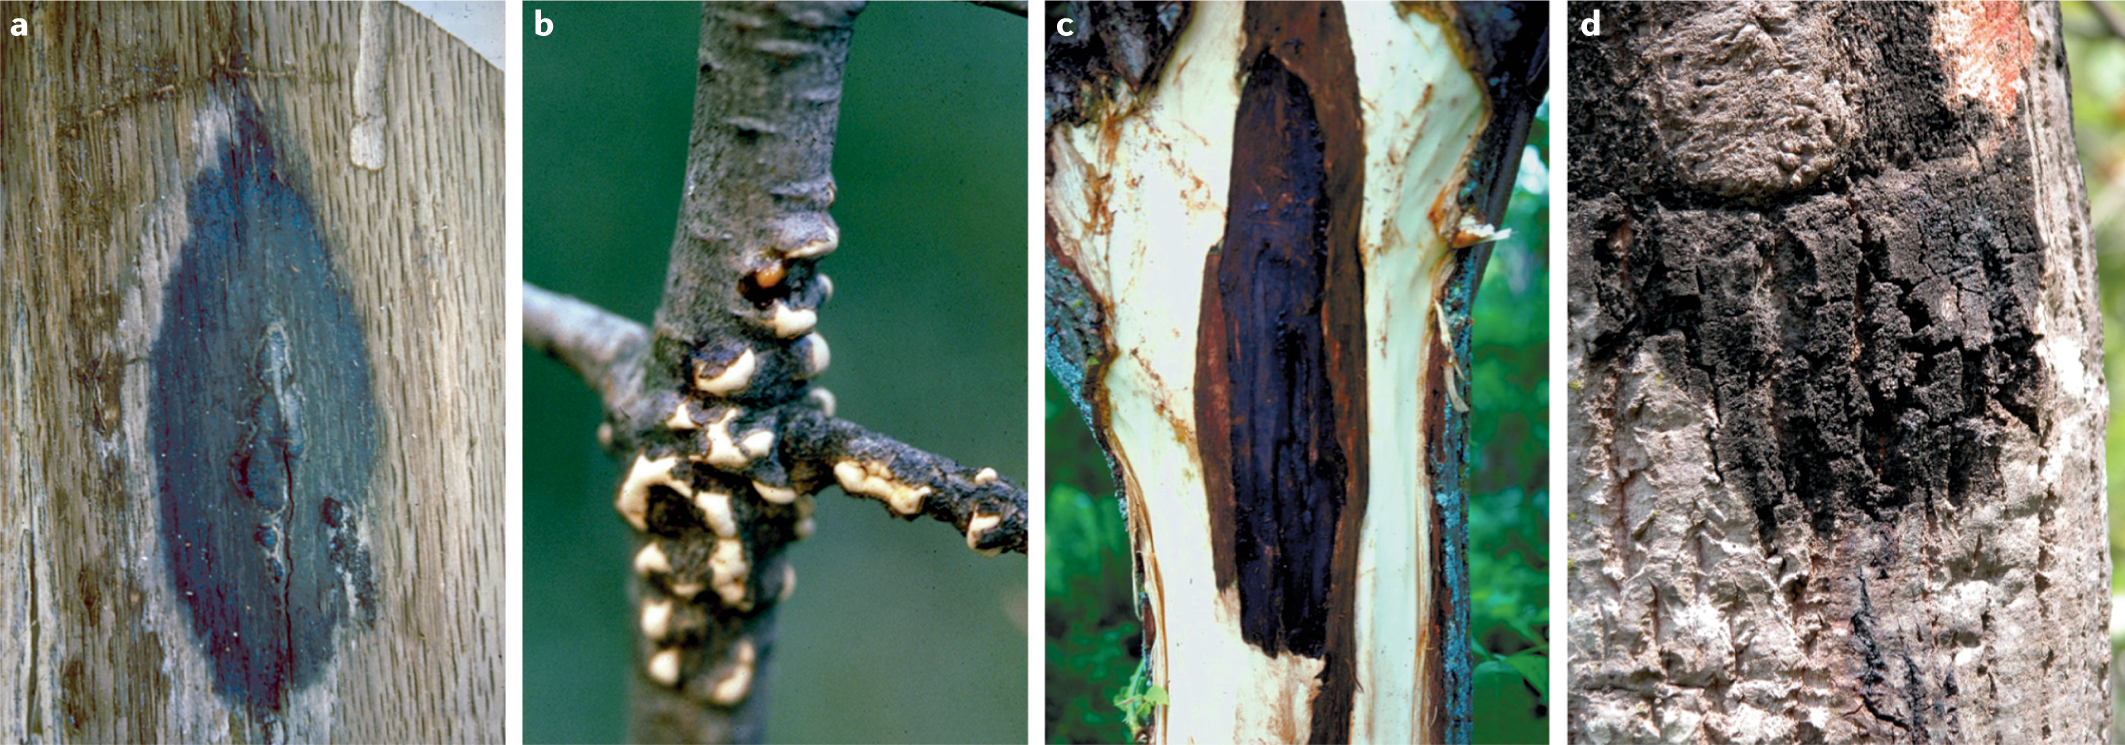 Microbial invasions in terrestrial ecosystems | Nature